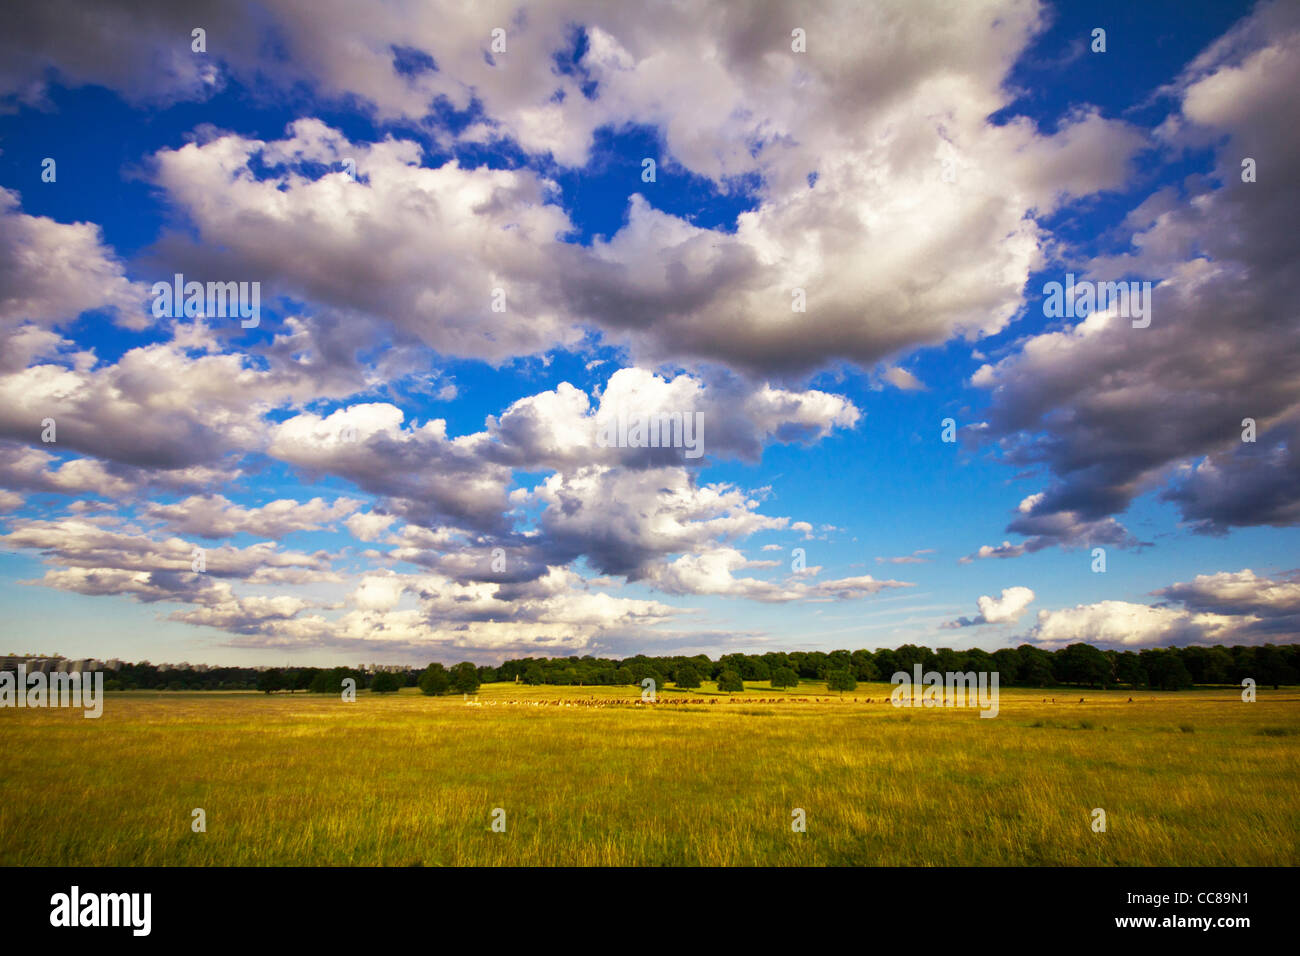 A sunny day in Richmond park - Stock Image